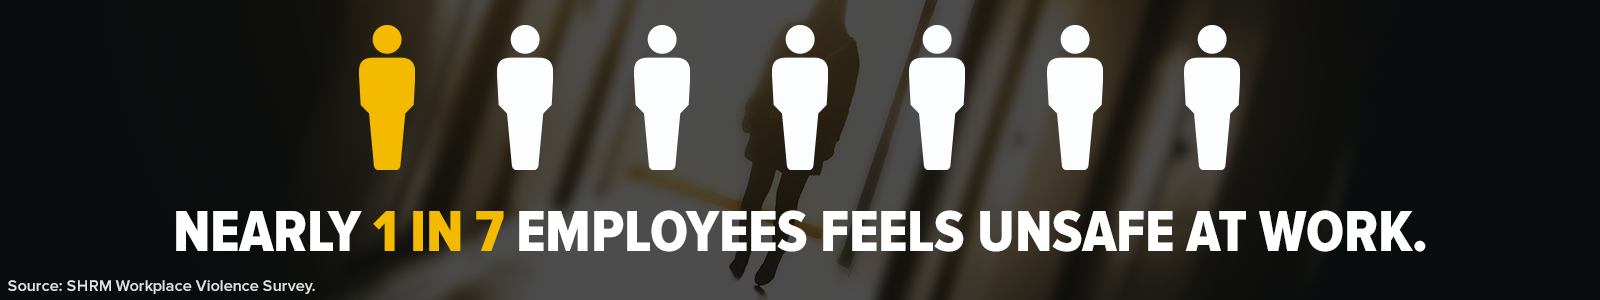 Nearly 1 in 7 employees feels unsafe at work.